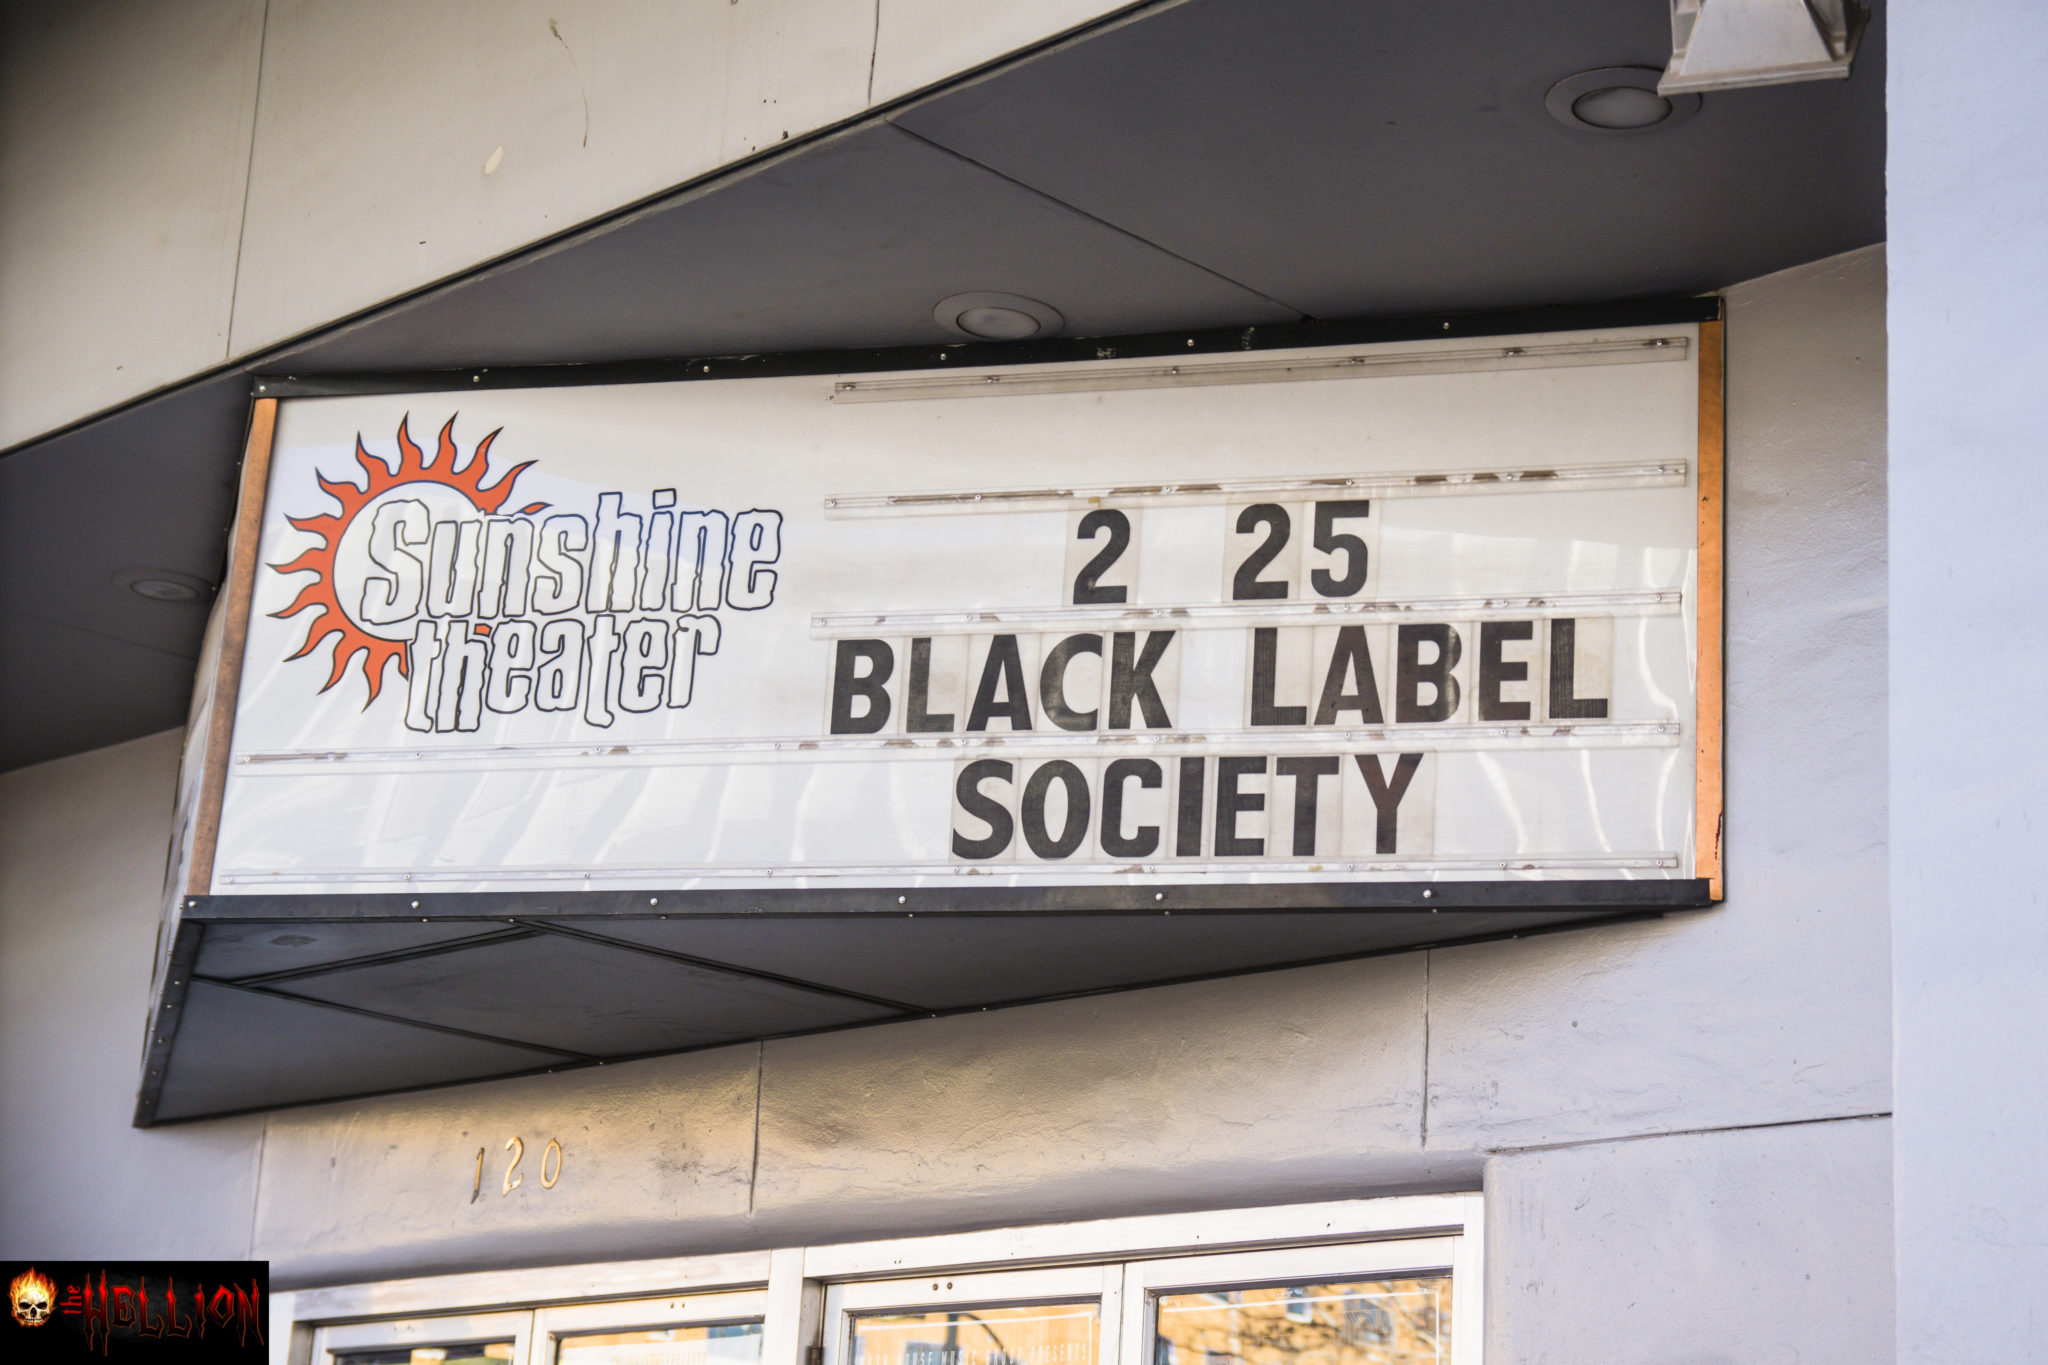 Concert review black label society the grimmest show on earth i had decided to go for broke and do the whole meet and greet thing with black label society so i arrived at the venue at the designated time of 430 pm m4hsunfo